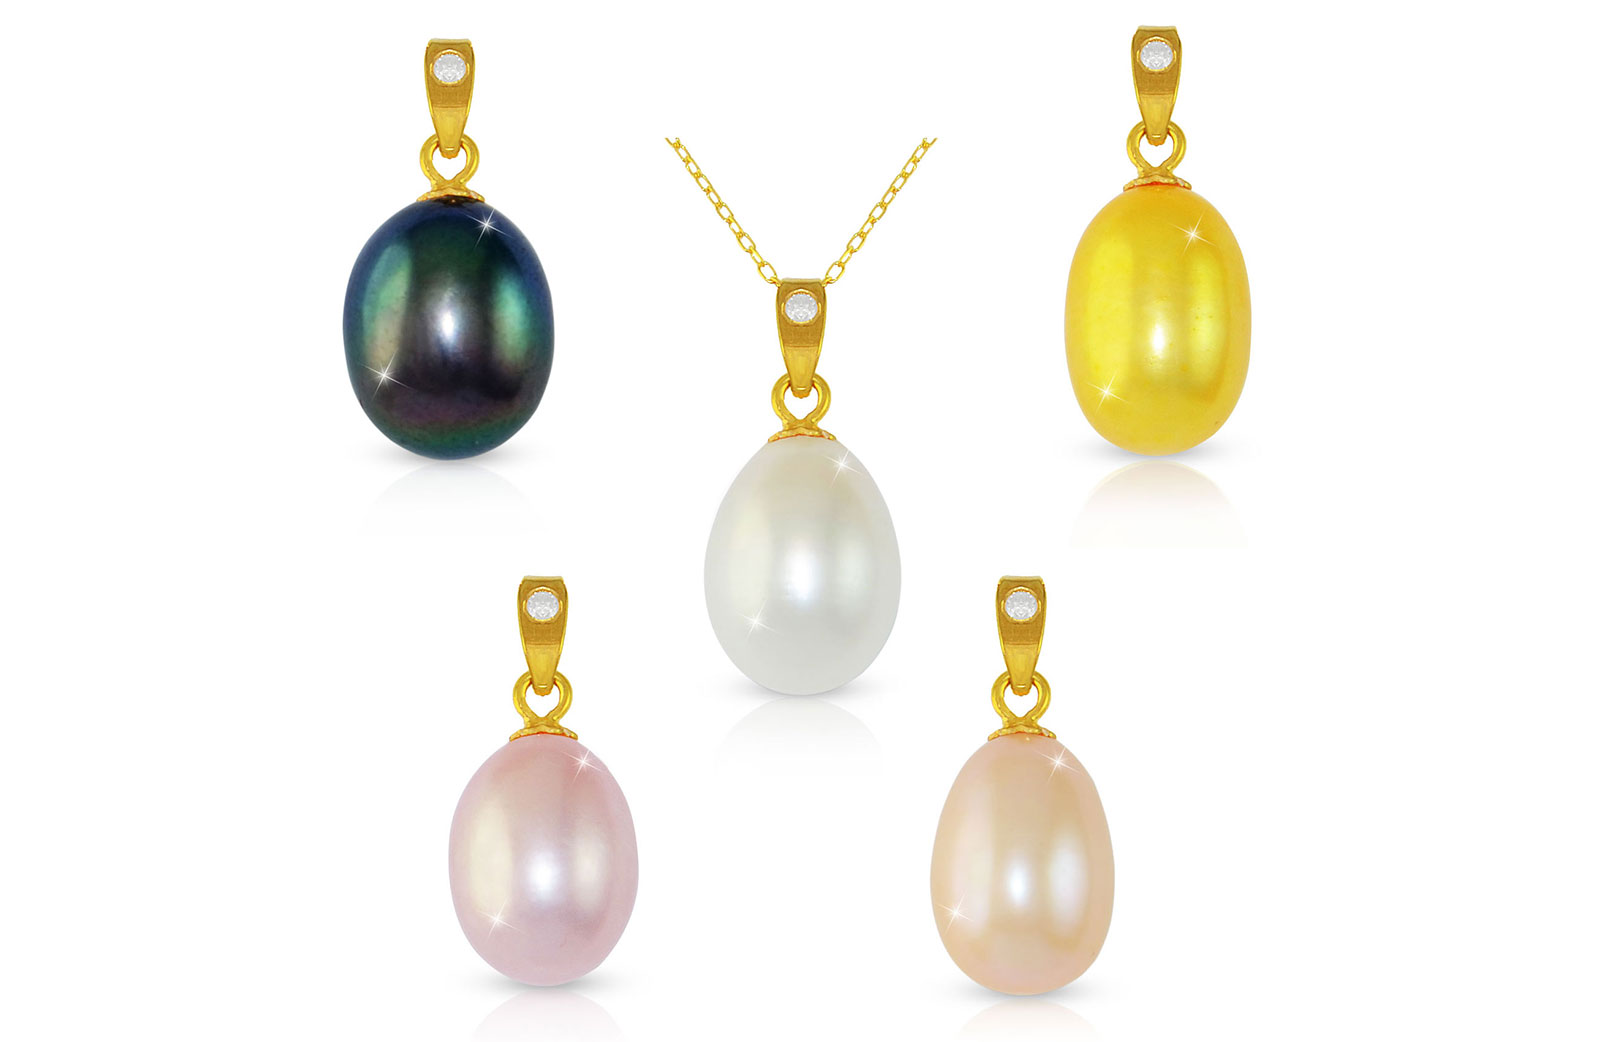 Vera Perla 18K Gold Diamond Pearl Pendants with 18K Gold Chain